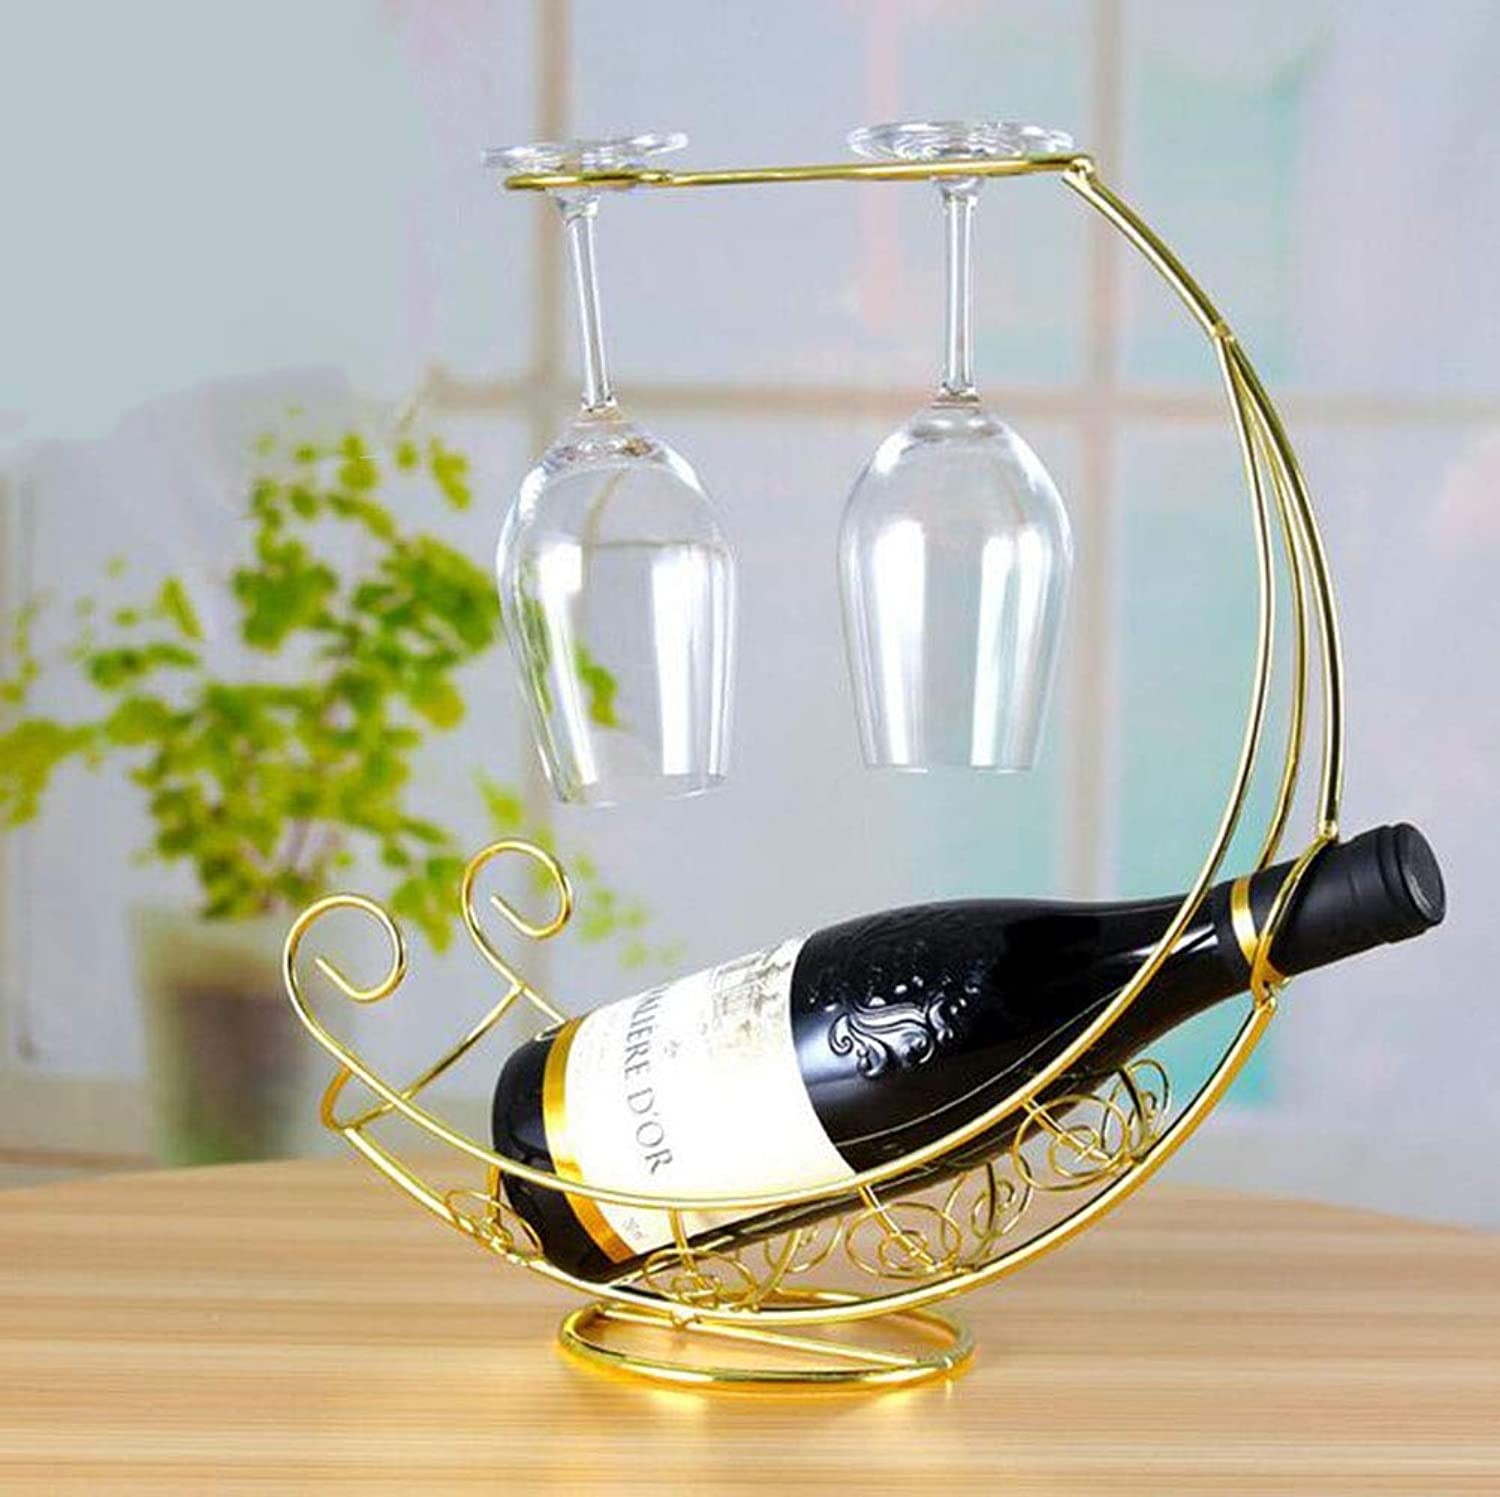 Red Wine Shelf European Wine rackle Goblet Upside Down Wine Glass Holder Home Modern Minimalist Creative Wrought Iron Ornaments set2pcs,gold,XXXL